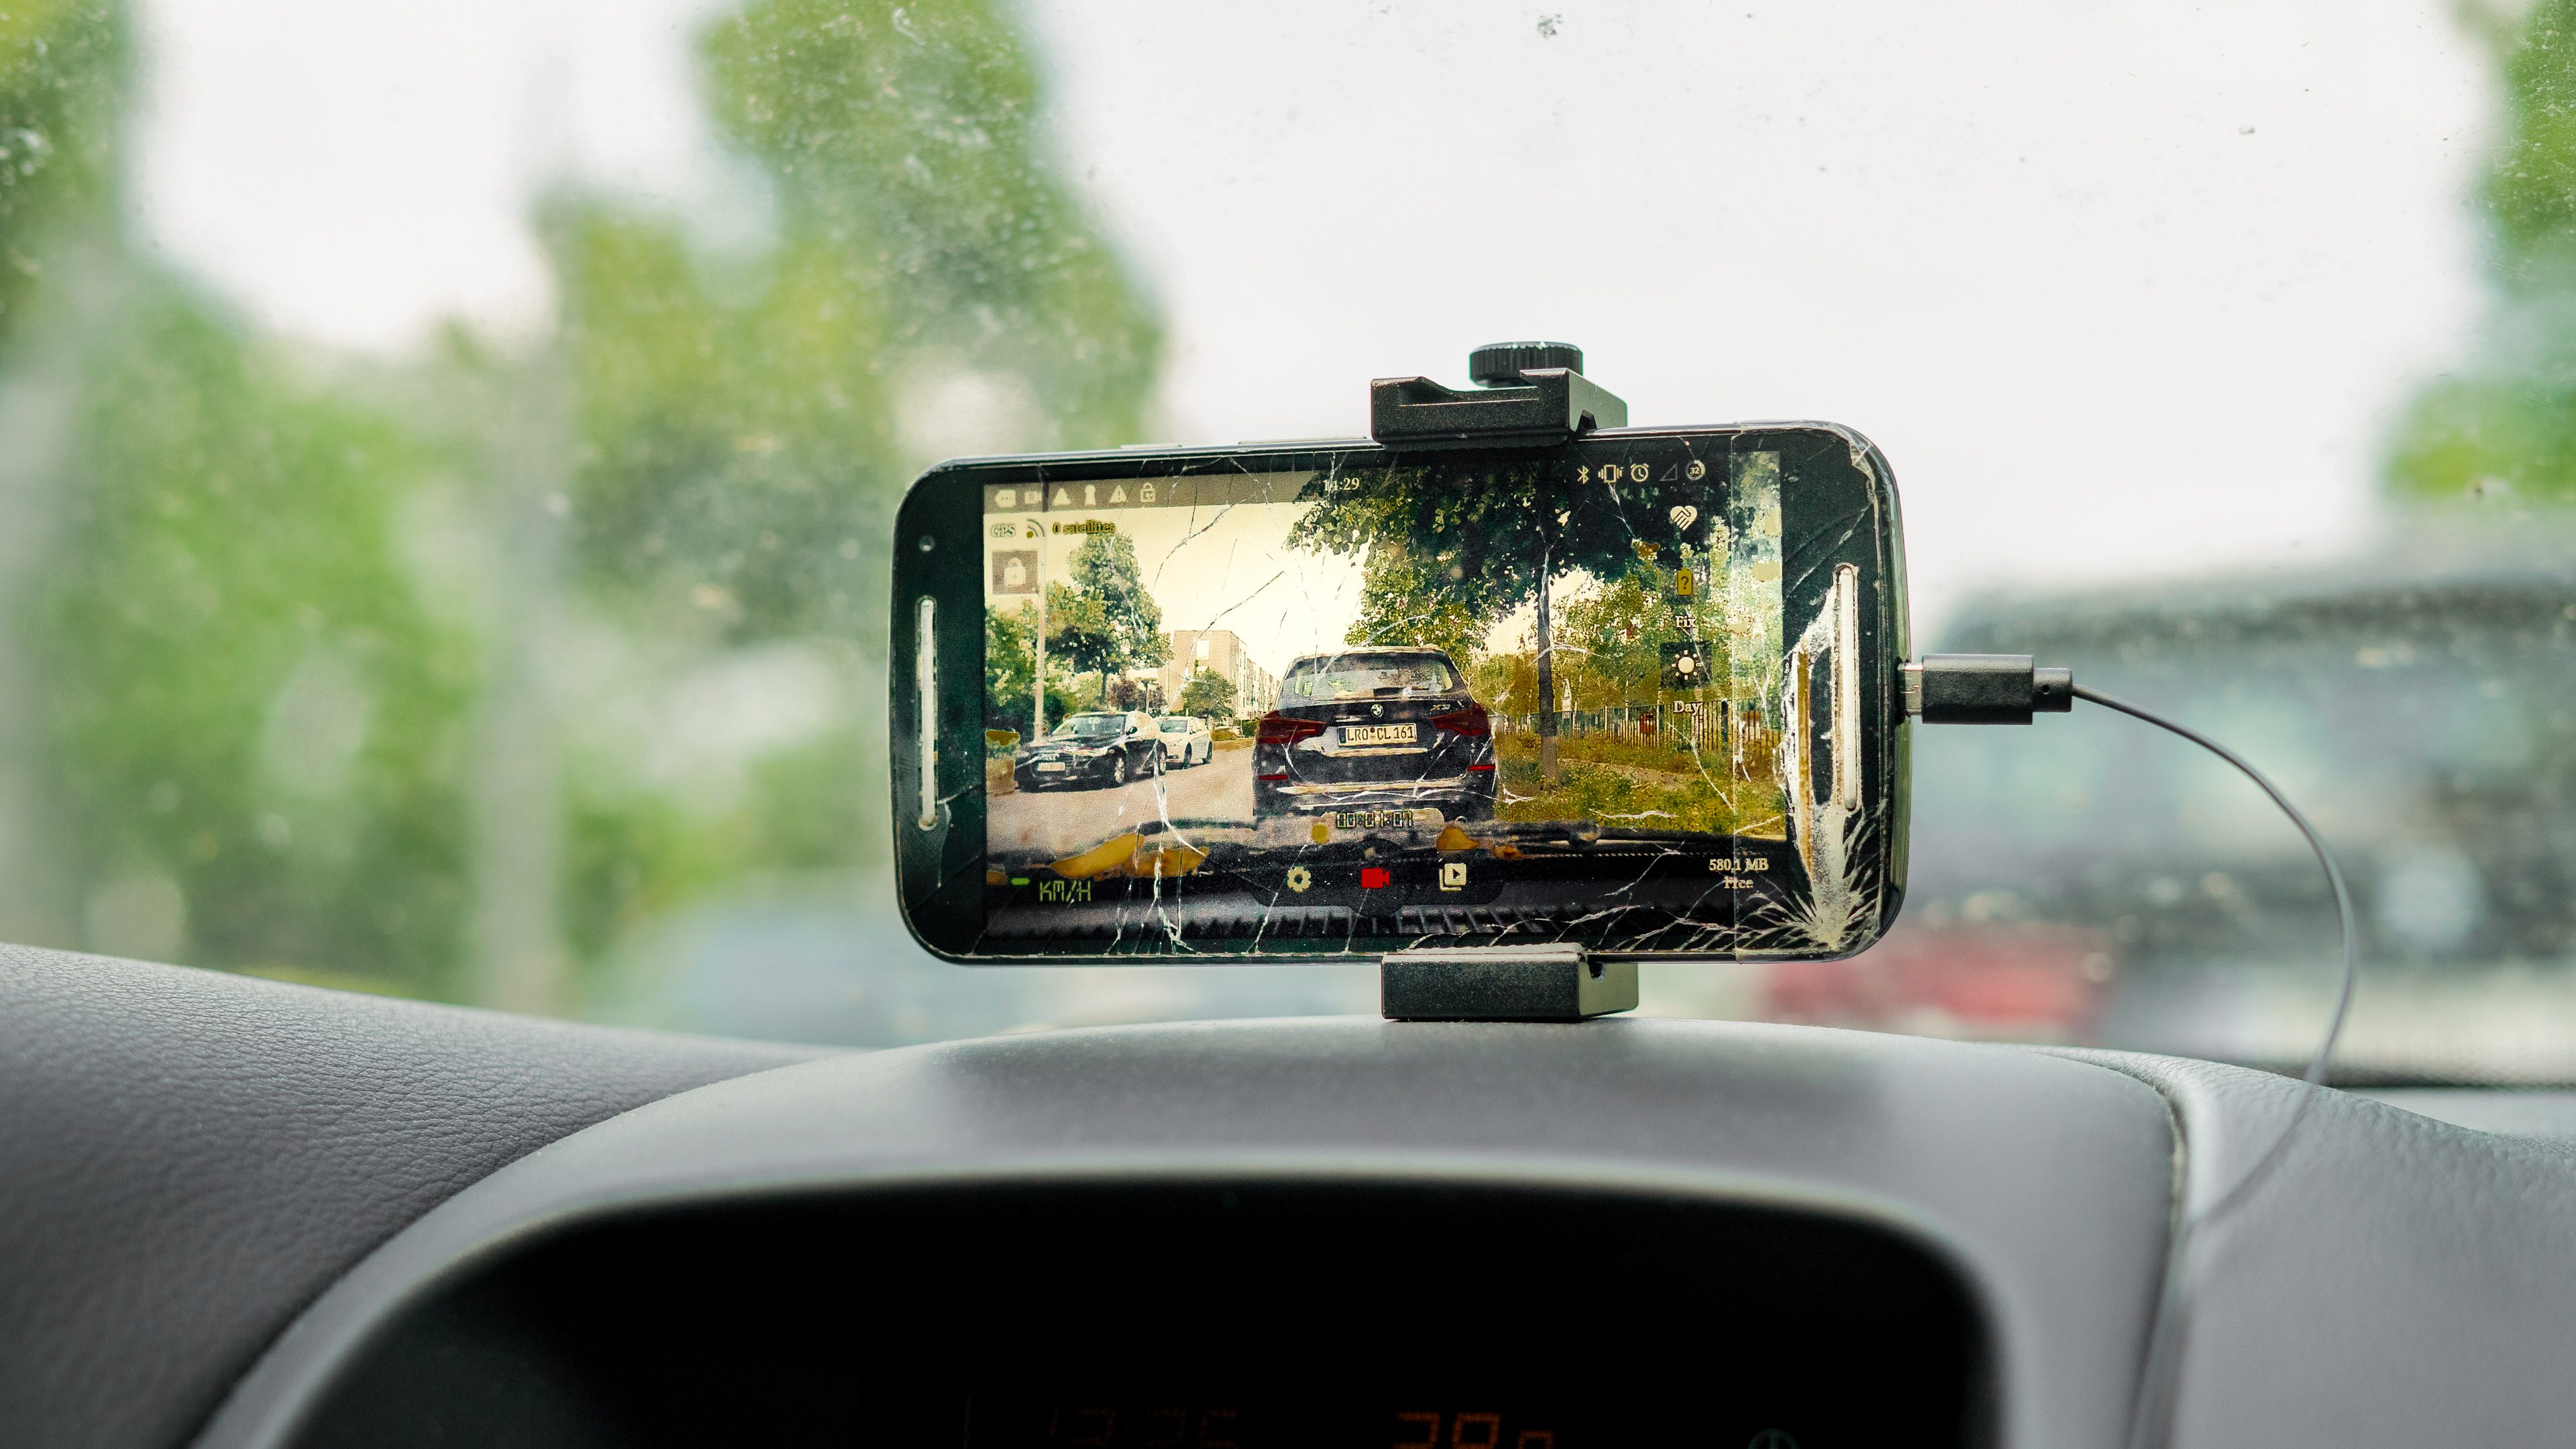 Use your old smartphone as a dash cam – legally and safely